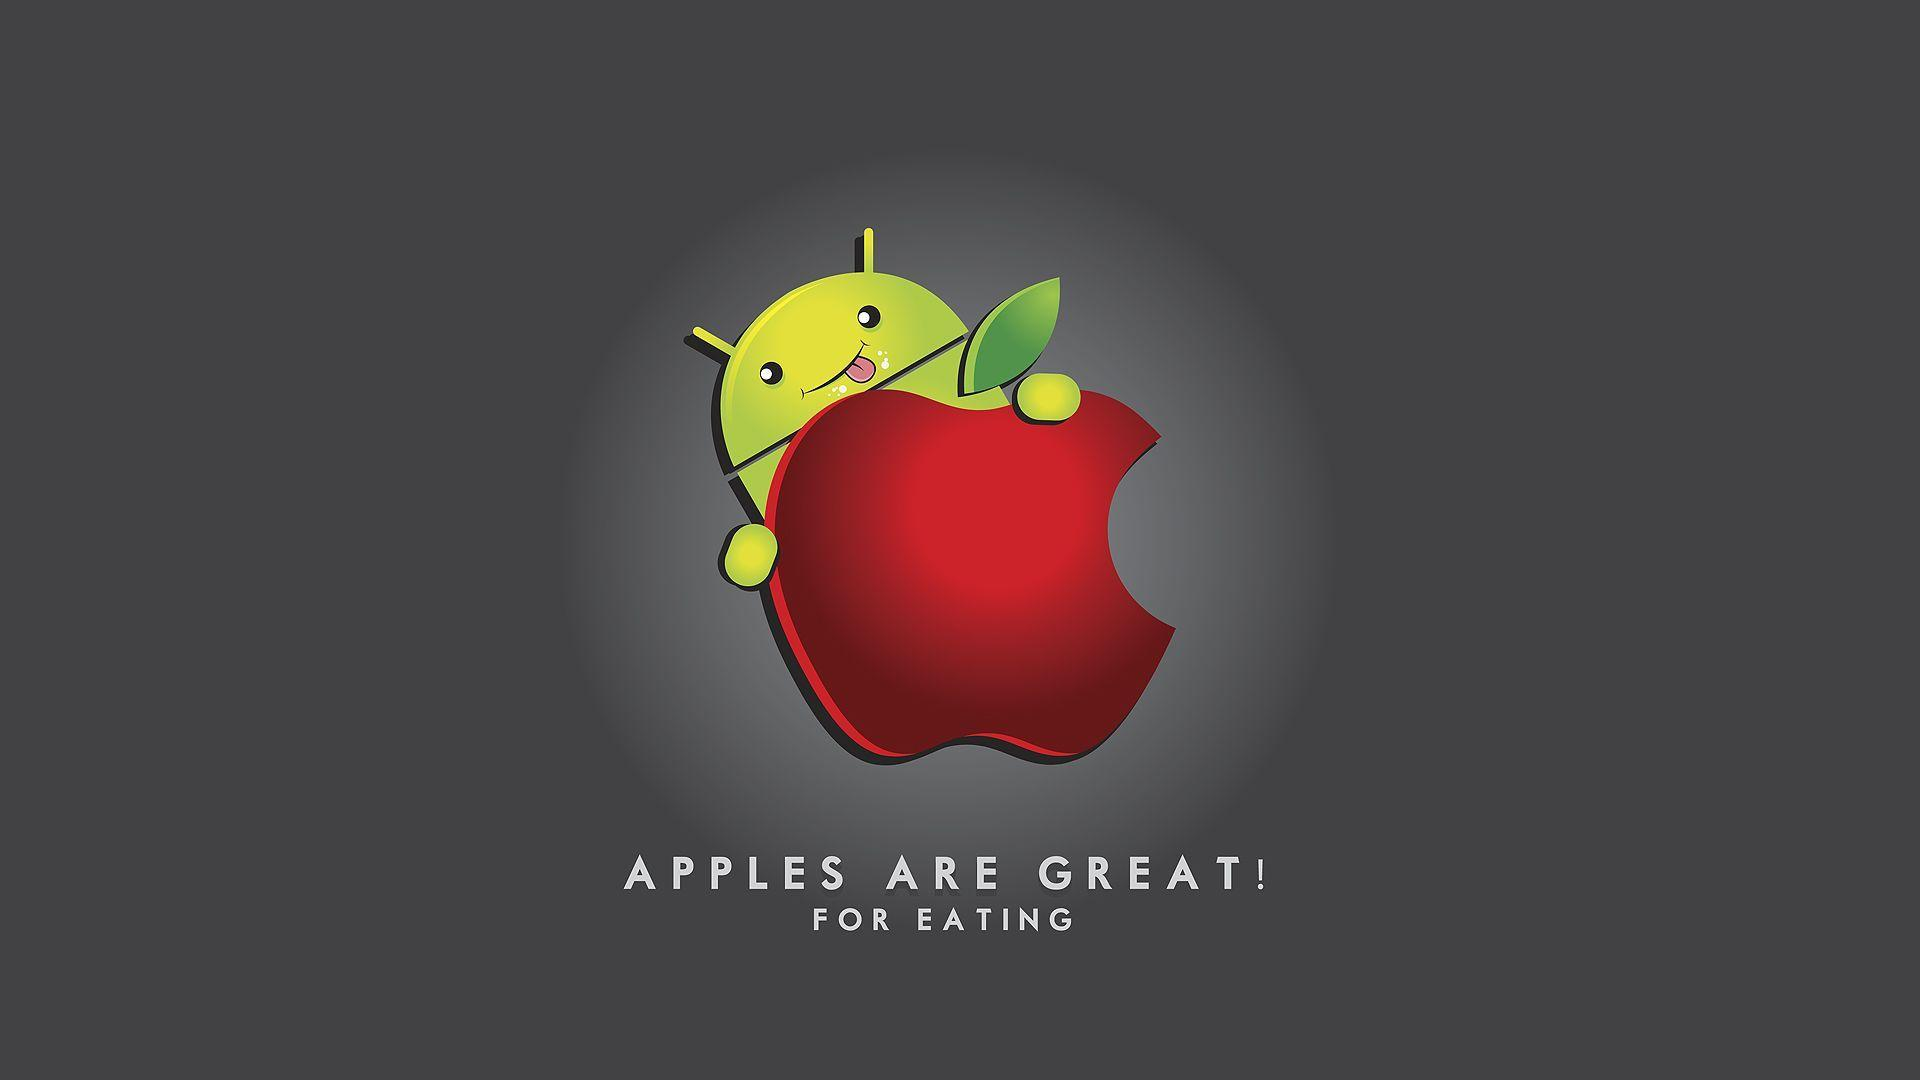 android vs apple wallpapers - wallpaper cave